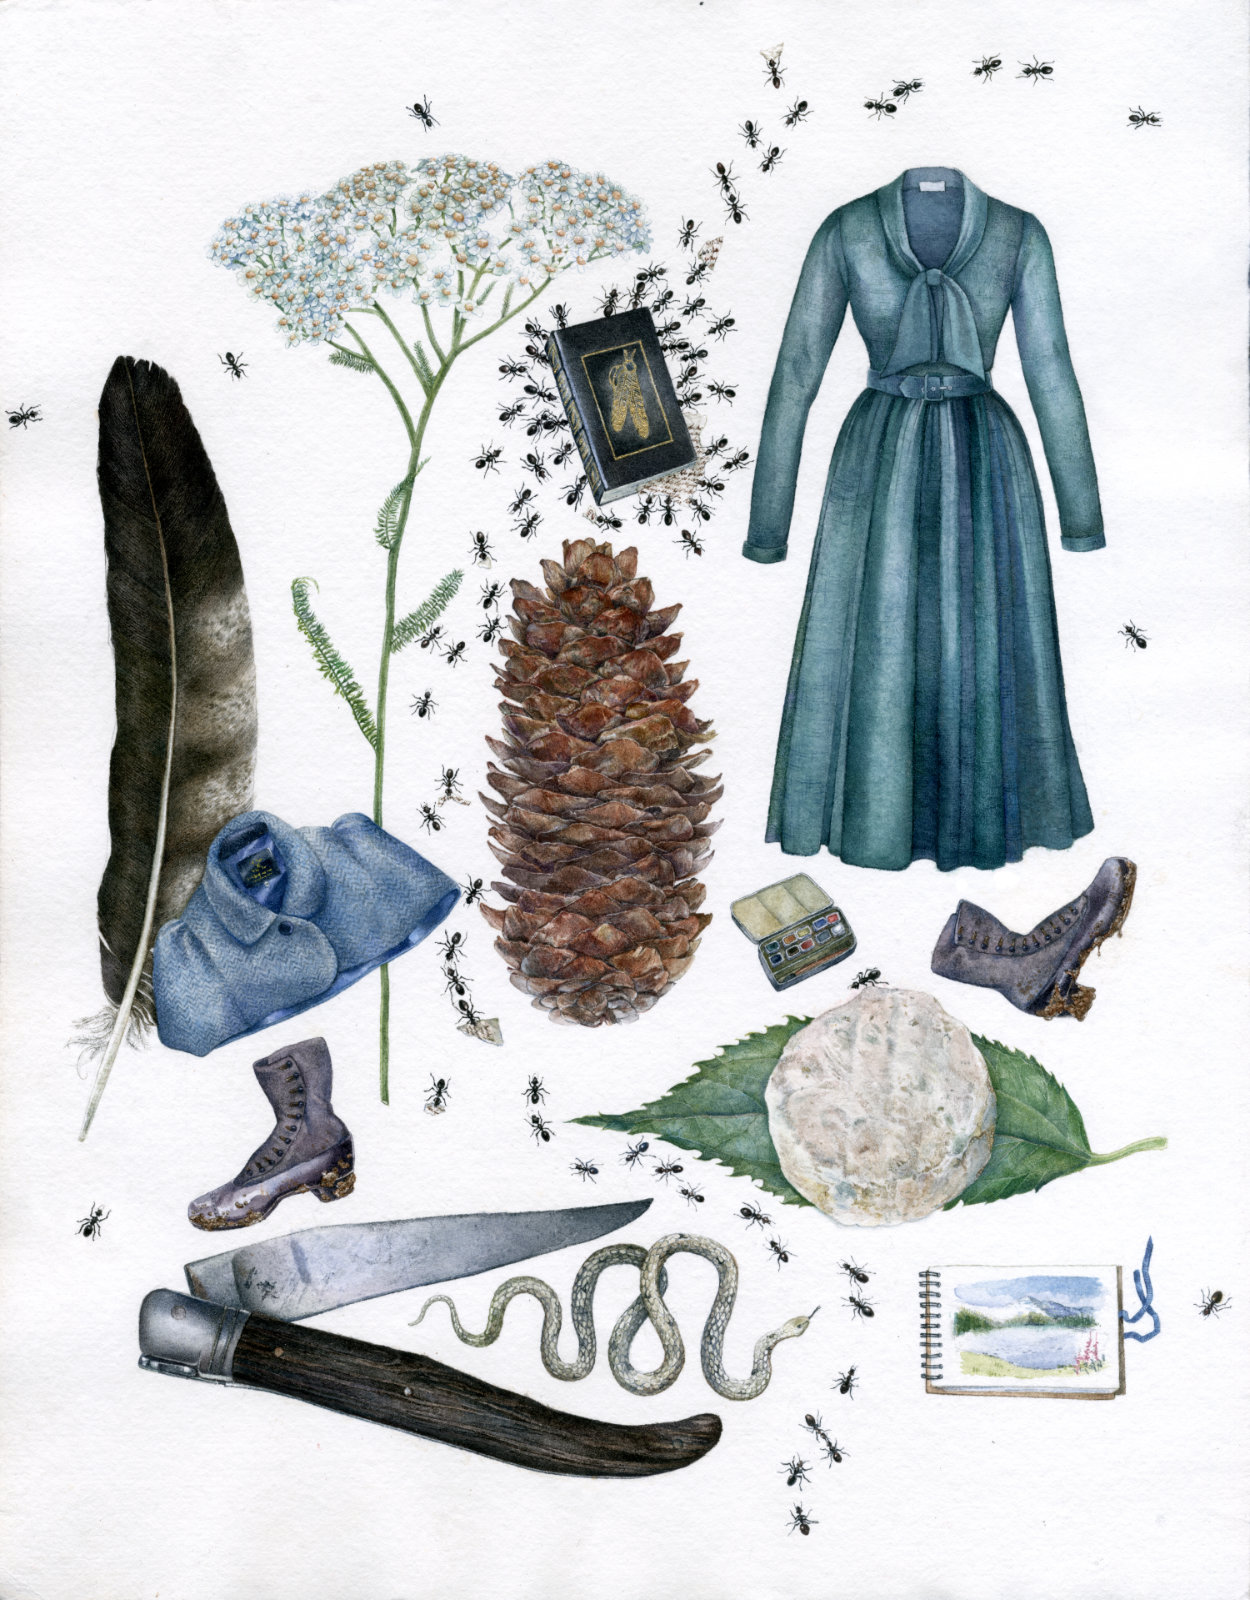 Technical illustration of a so-called herbarium revolving around walks in Nature featuring an array of natural objects such as yarrow, a hawk feather, a snake, ants, mixed with fashionable items of clothing such as a capelette from tailor Stewart Christie, a Lena Hoschek wool dress, antique boots, complete with cultural and gastronomical additions such as a copy of the Last of the Mohicans book and a picnic-worthy goat cheese with knife